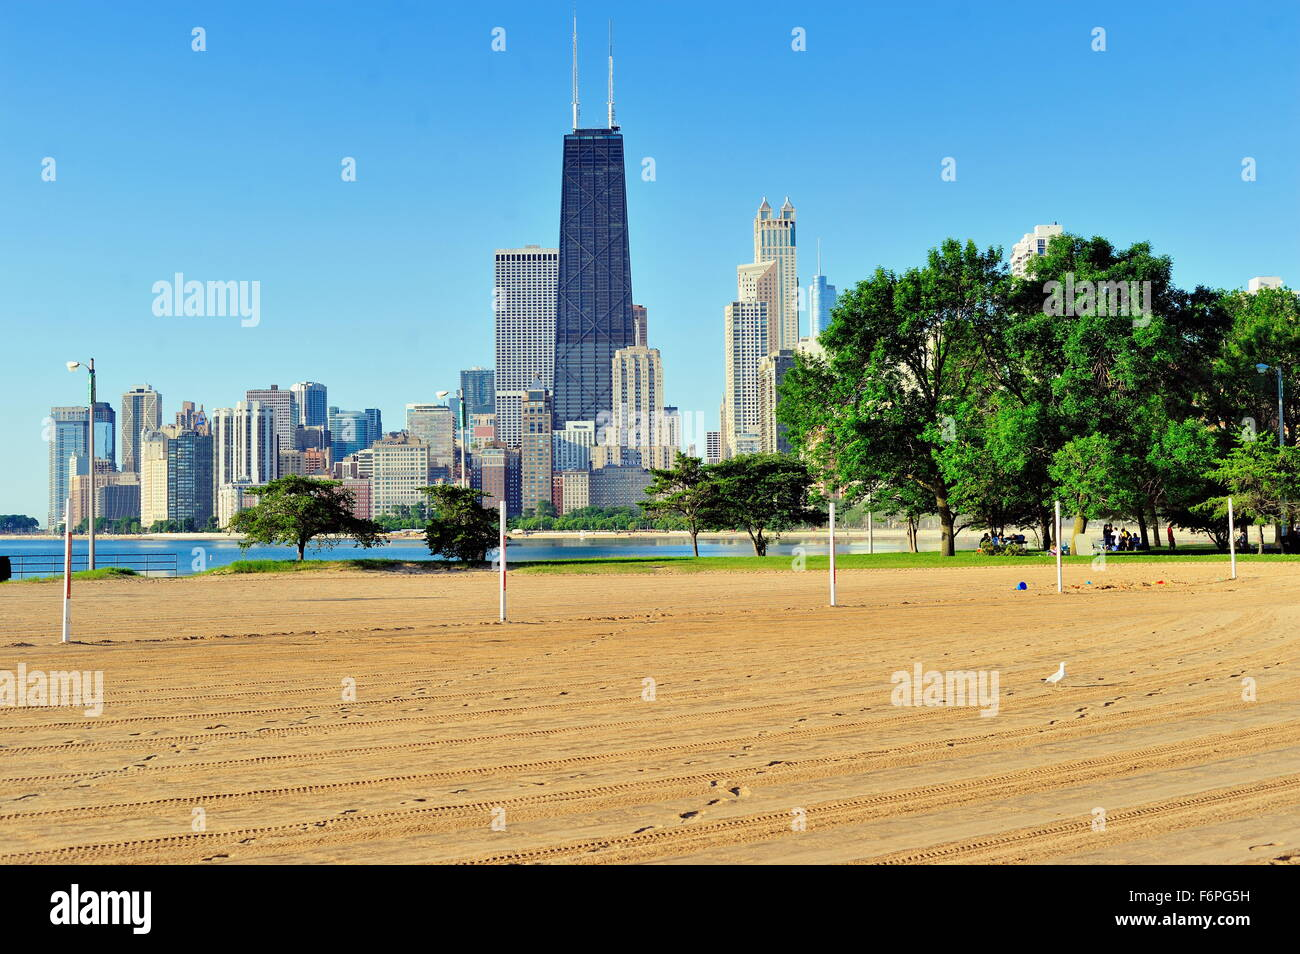 Lincoln Park Chicago People Stock Photos & Lincoln Park ...